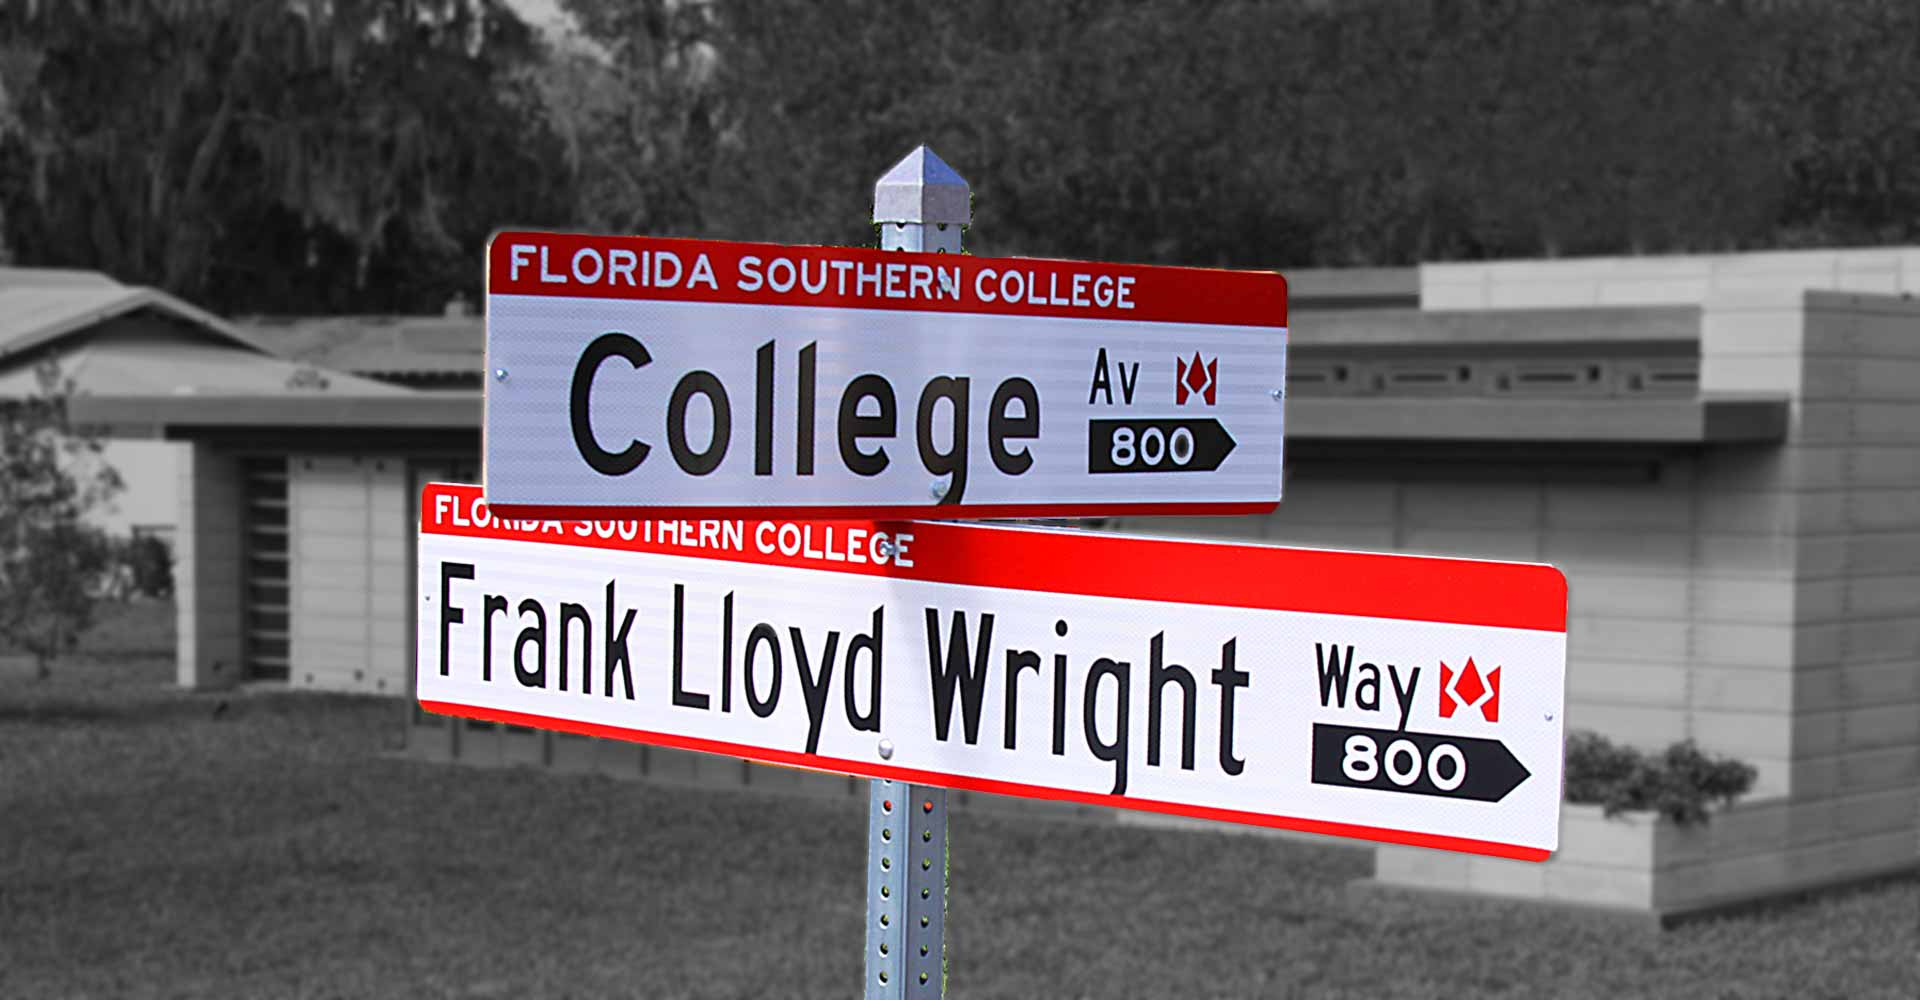 street sign on the corner of college avenue and frank lloyd wright way